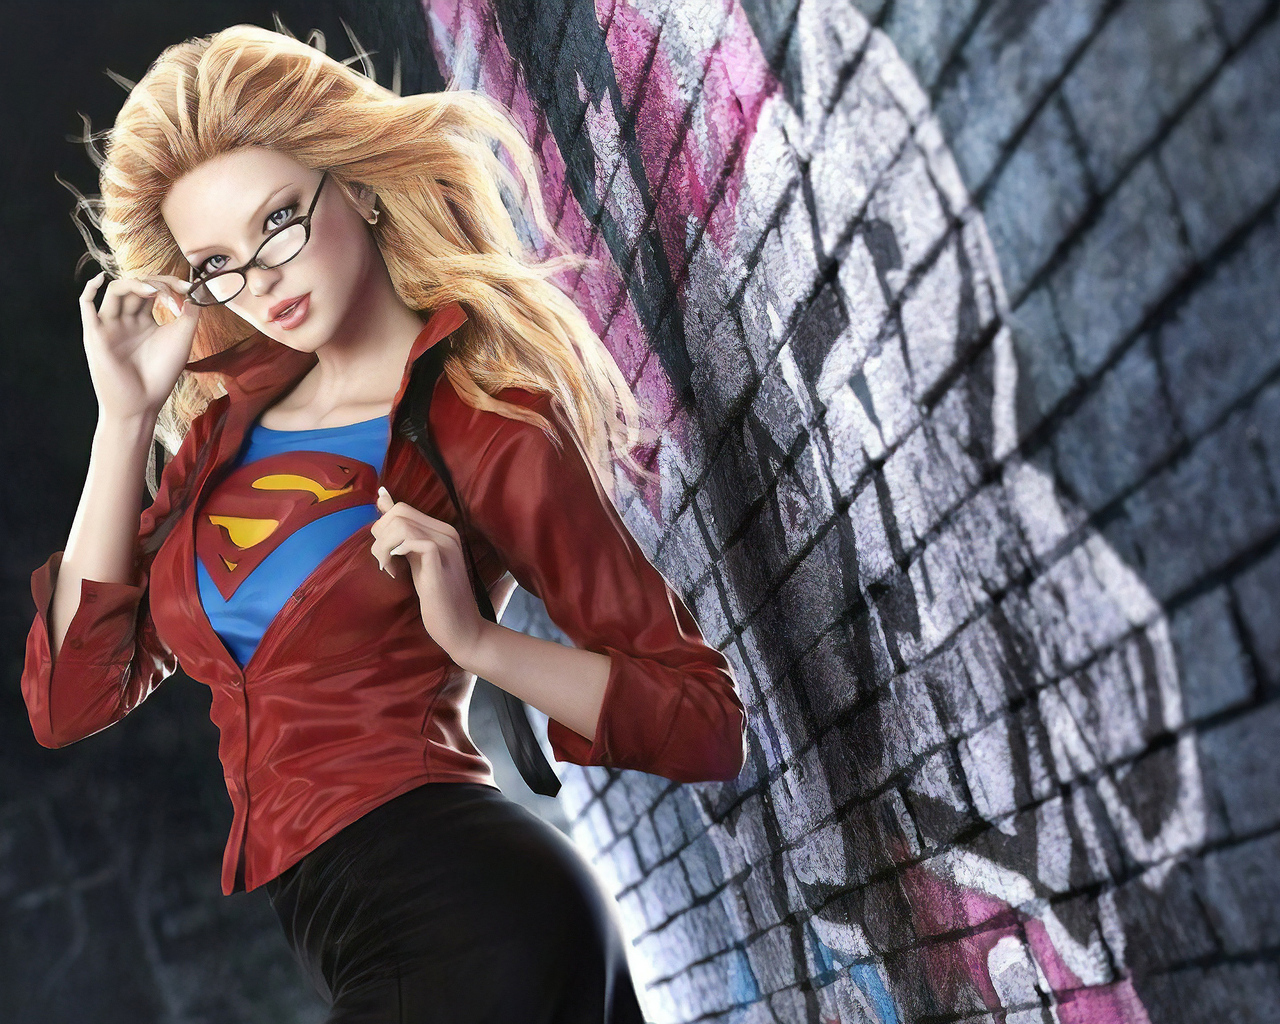 office-supergirl-m0.jpg